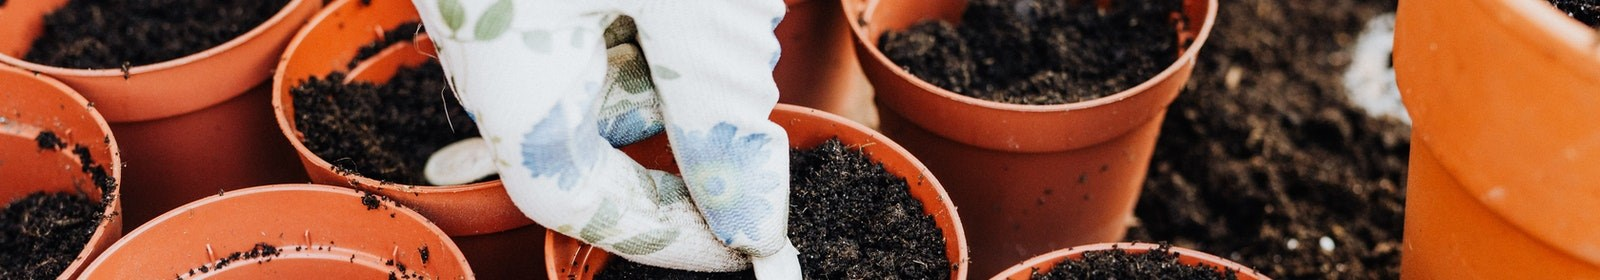 How to make a compost heap at home